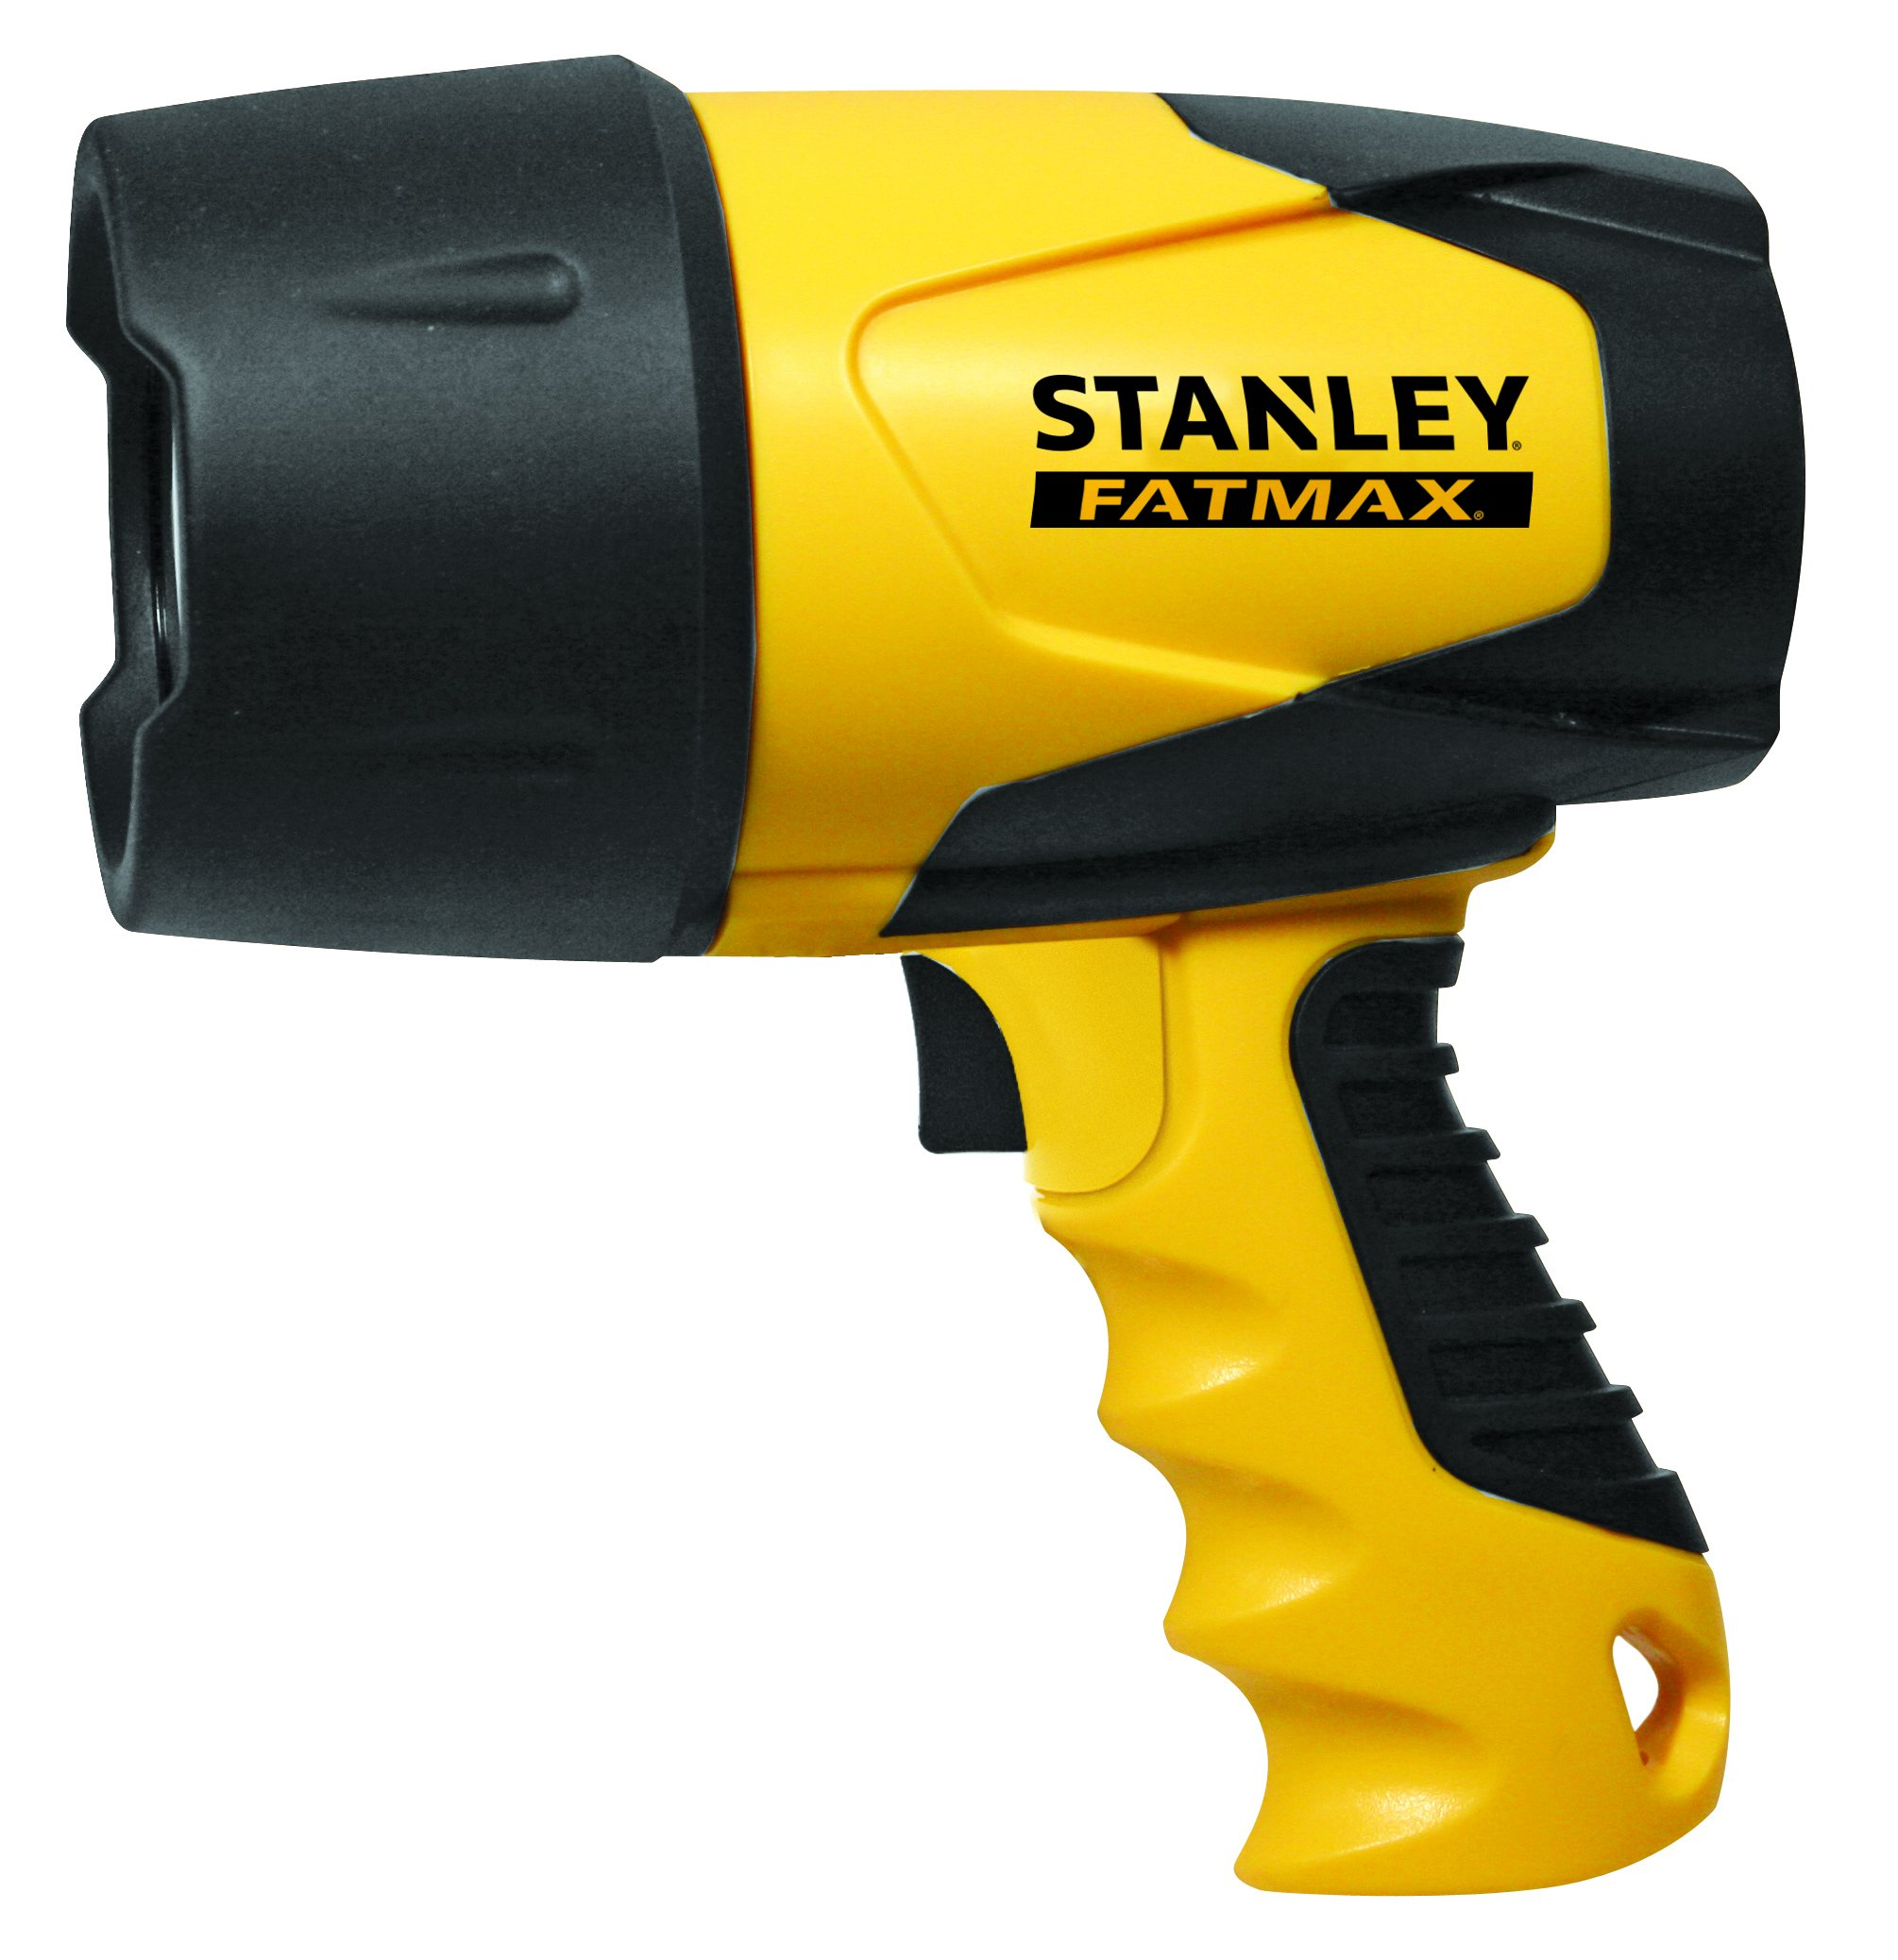 STANLEY FATMAX FL5W10 Rechargeable 520 Lumen Lithium Ion Waterproof LED Spotlight Flashlight by STANLEY